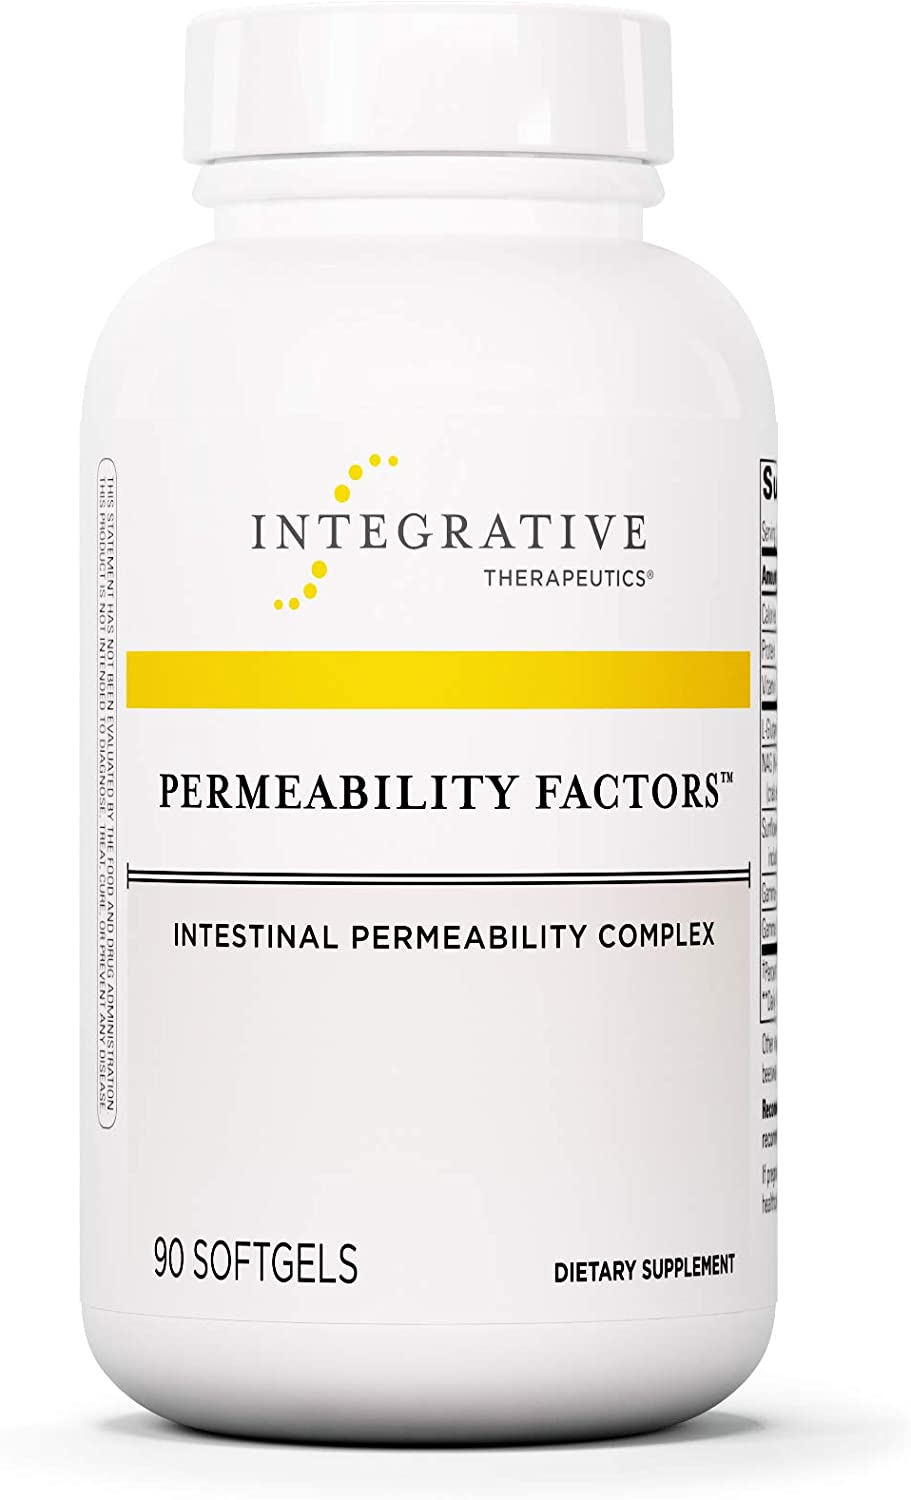 Integrative Therapeutics – Permeability Factors – Intestinal Permeability Complex – 90 Softgels